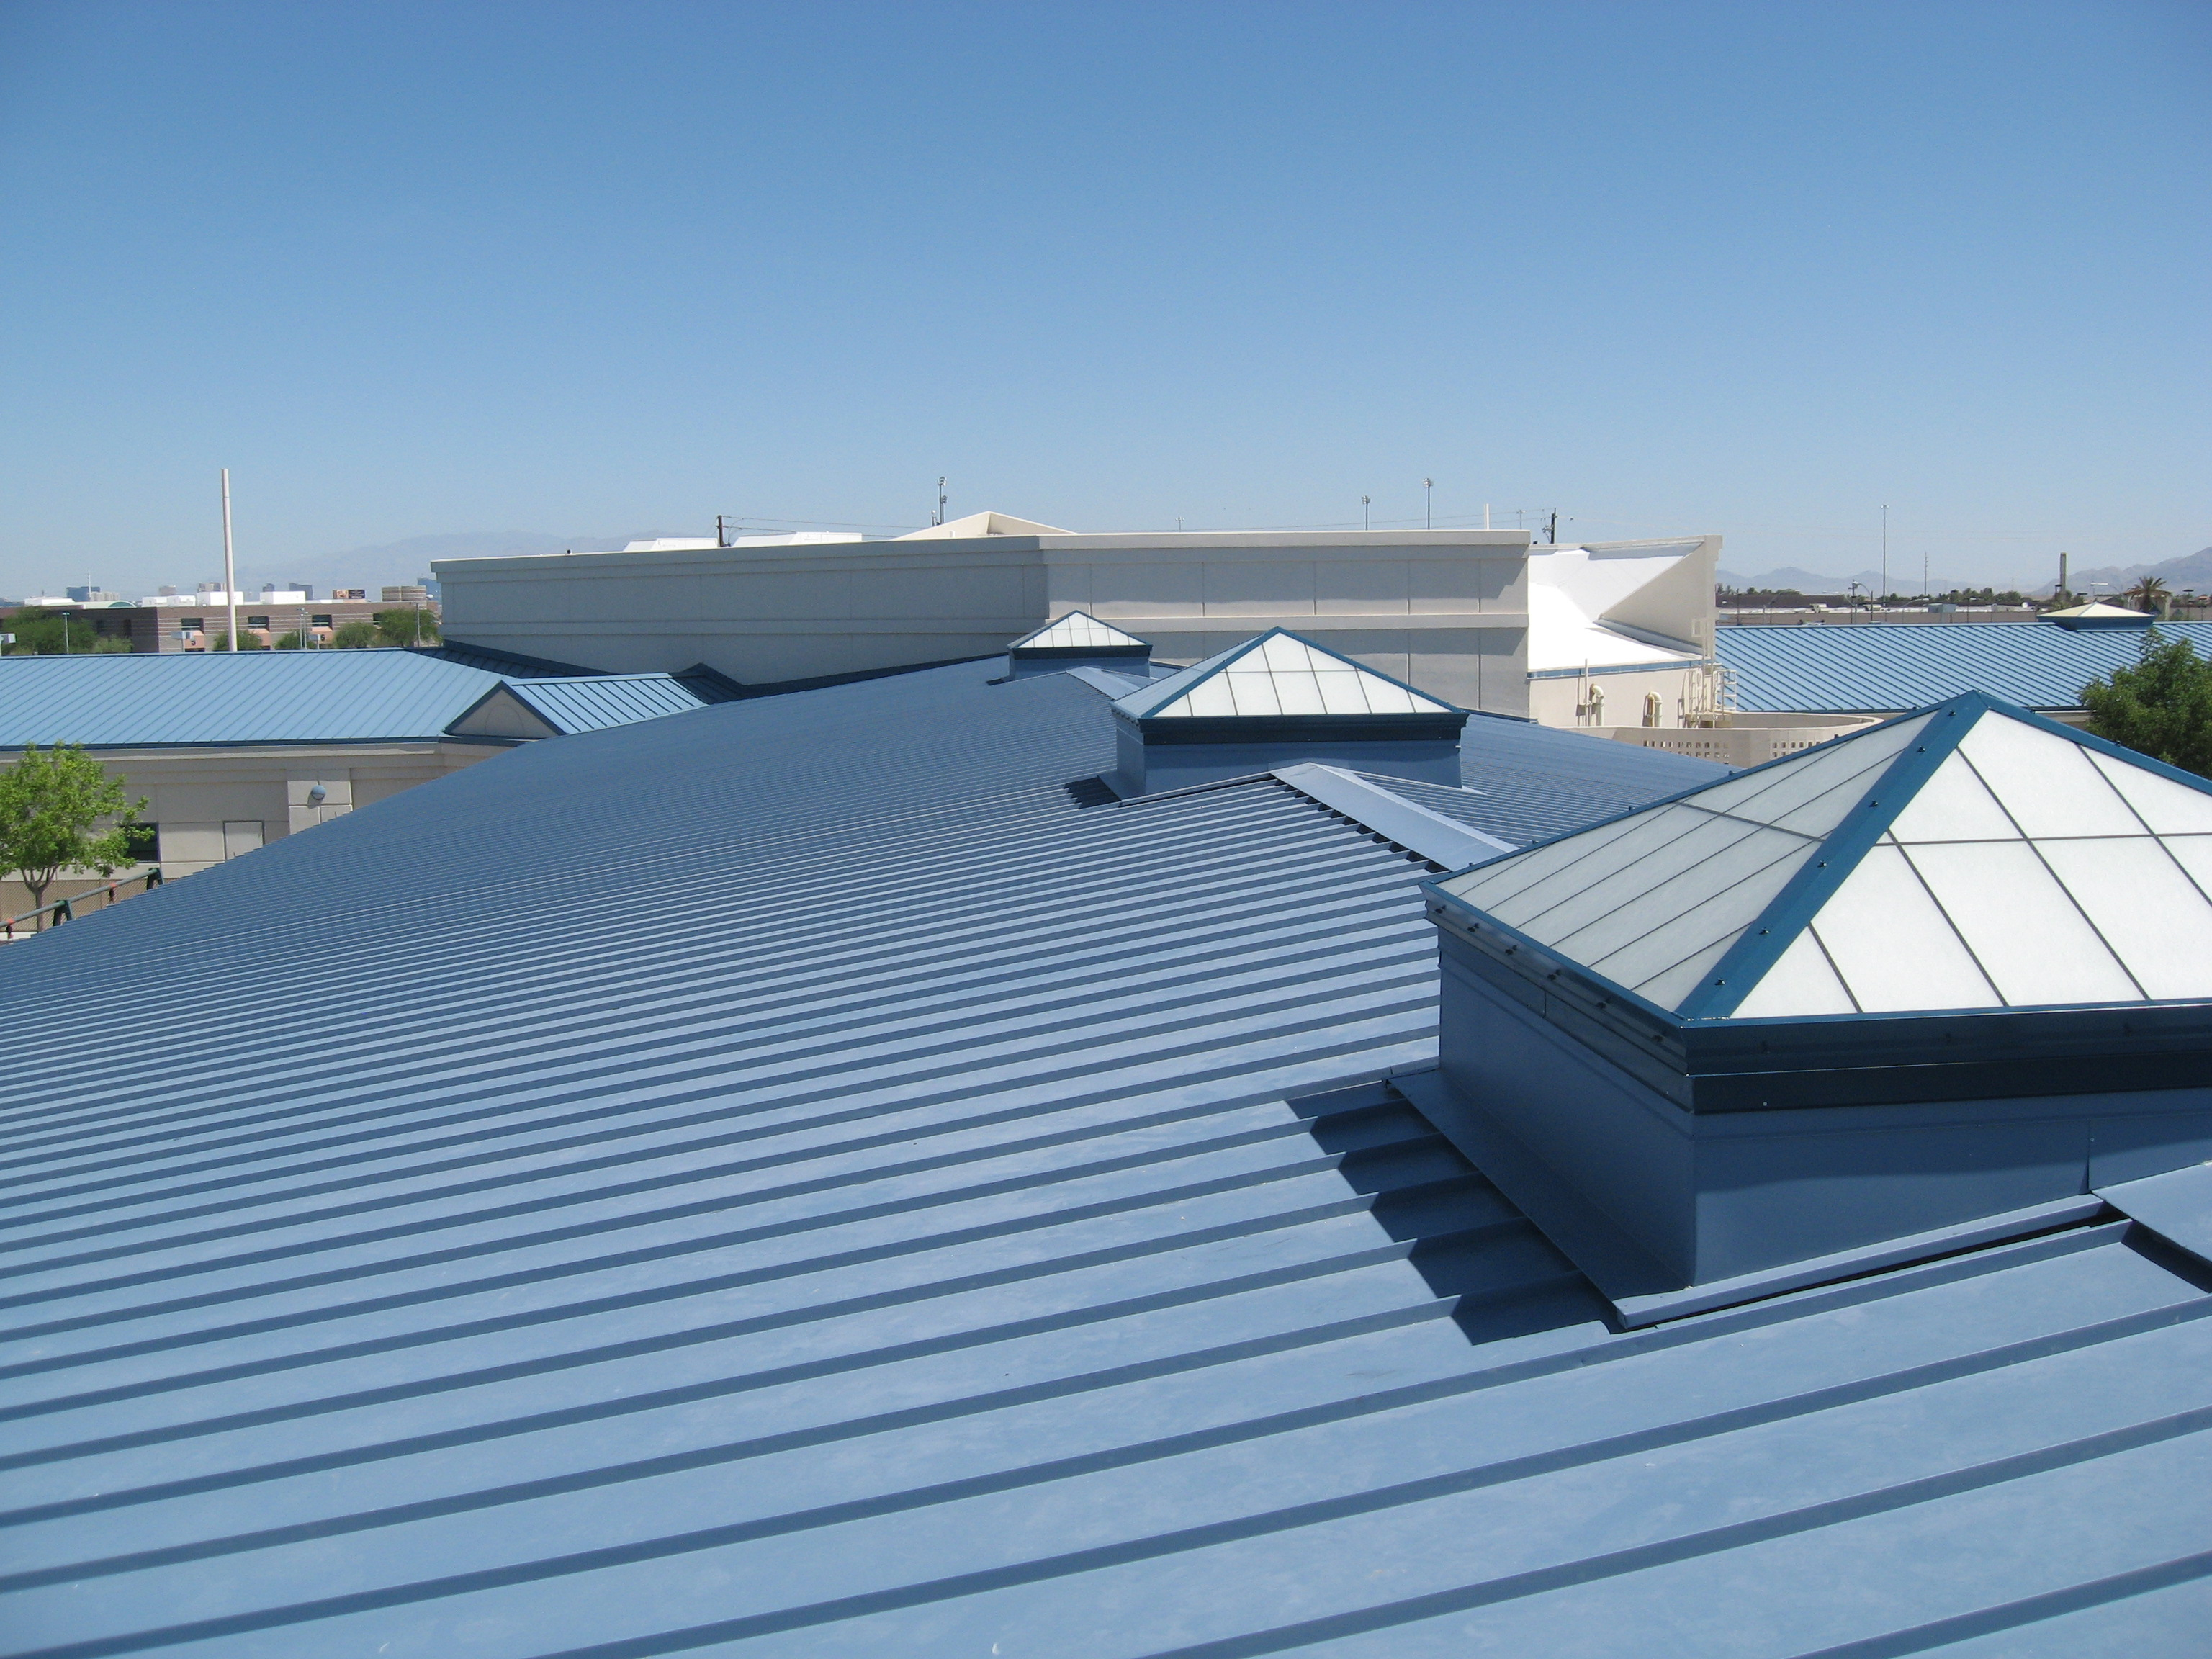 7 Popular Siding Materials To Consider: Top Commercial Roofing Contractors For Timely, Quality